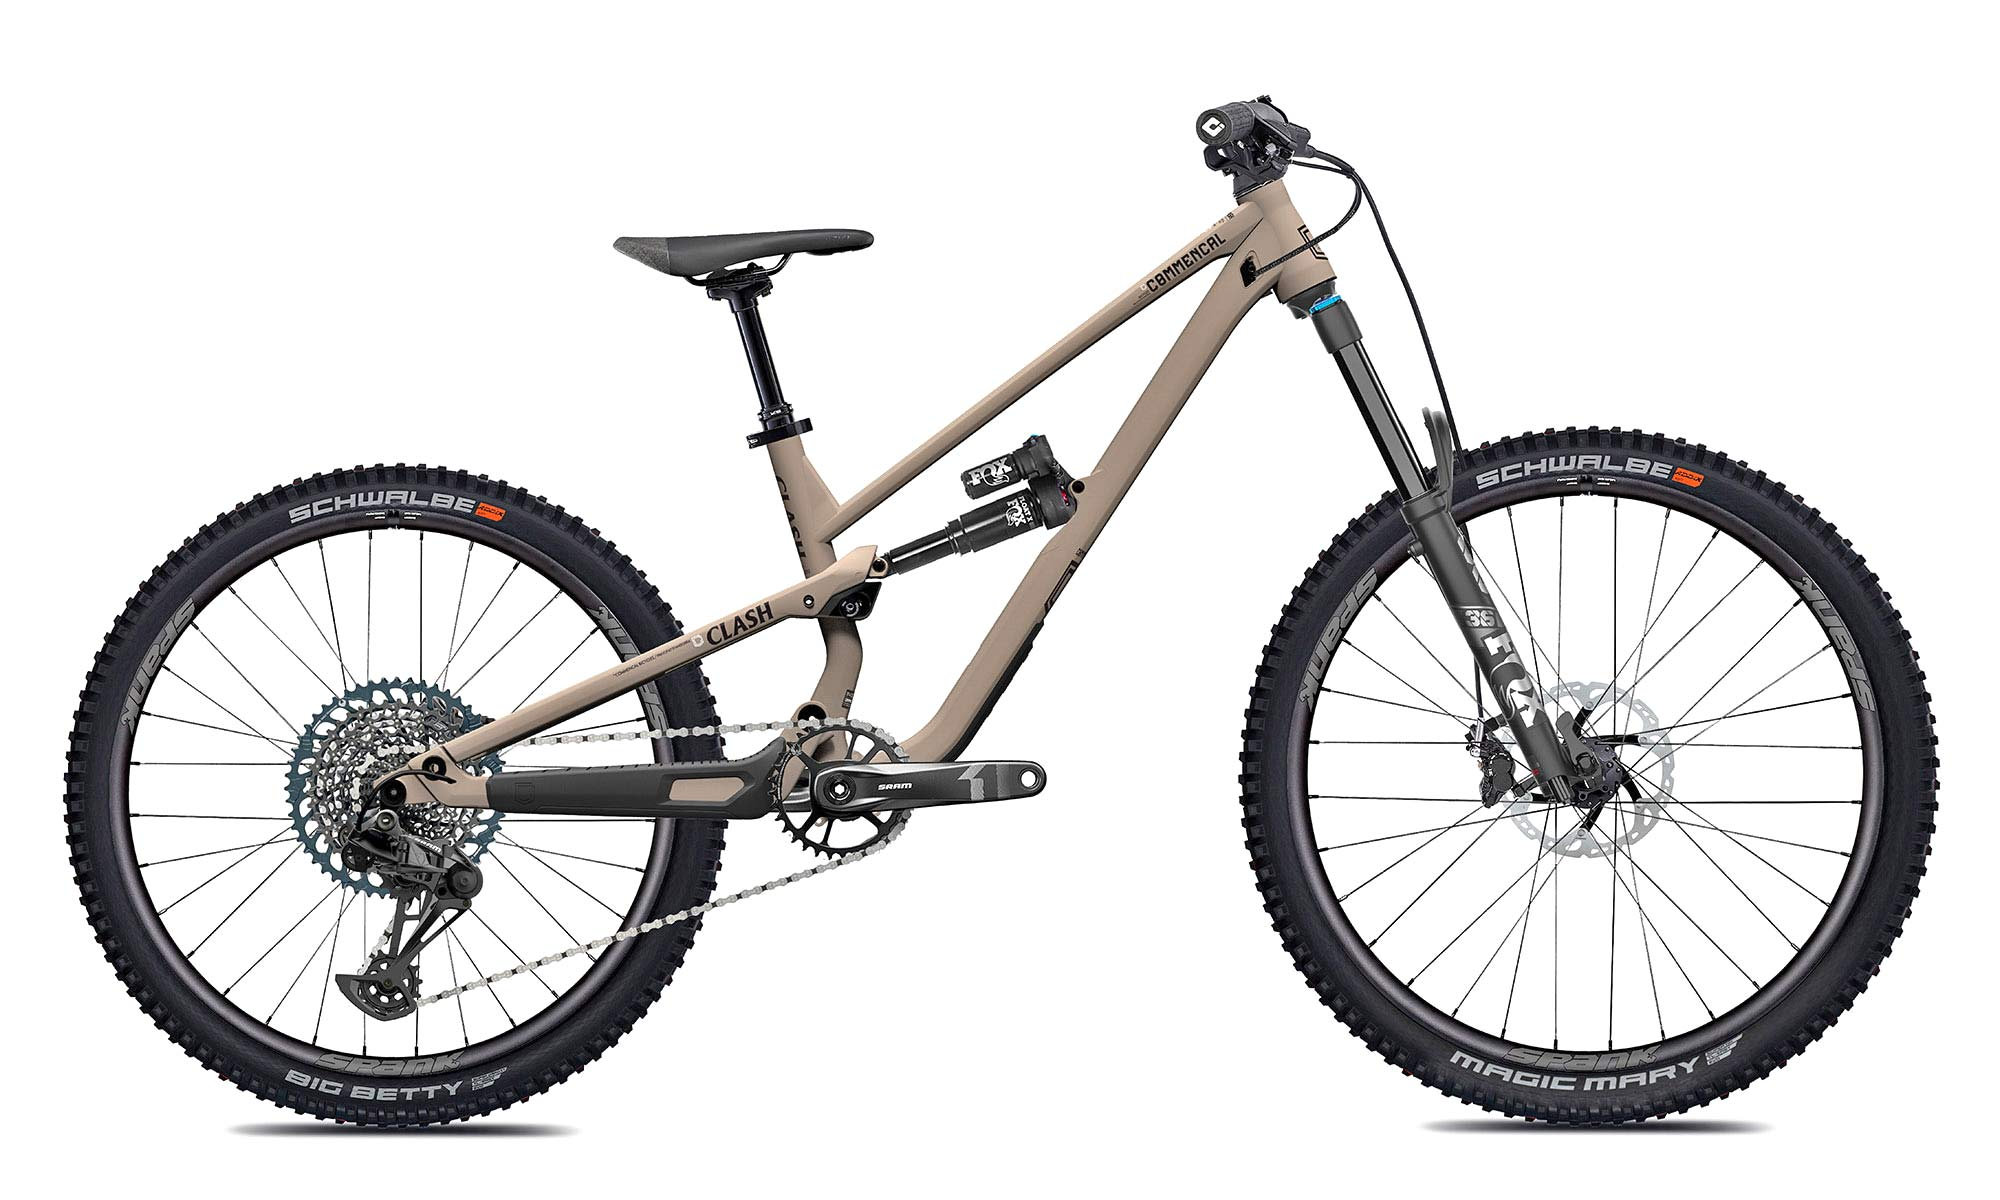 2022 Commencal Clash Kids reshapes VPP all-mountain to enduro bikes for all ages thumbnail